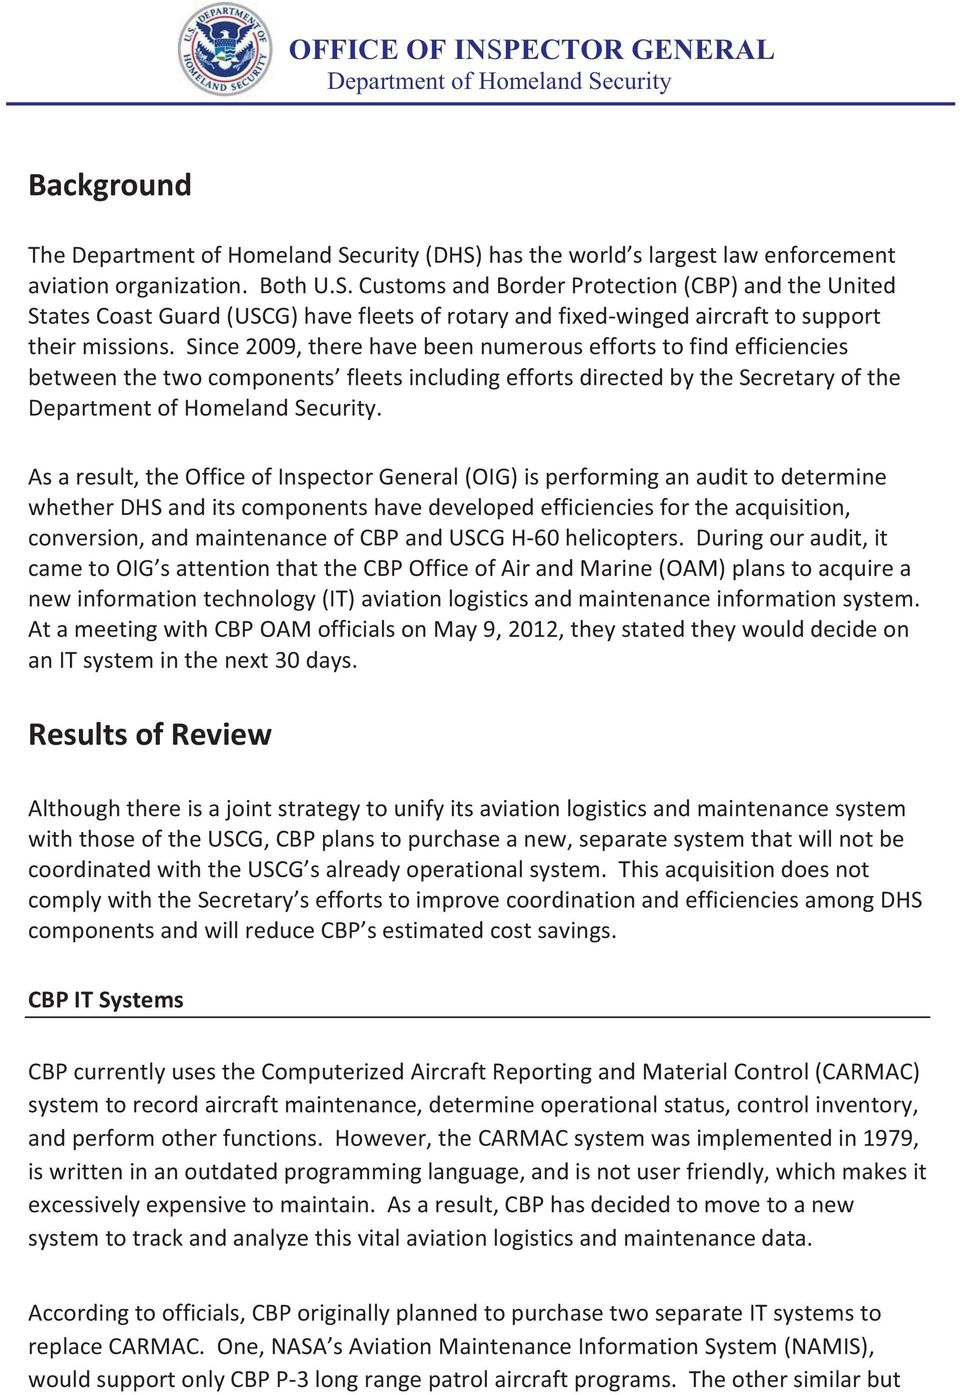 As a result, the Office of Inspector General (OIG) is performing an audit to determine whether DHS and its components have developed efficiencies for the acquisition, conversion, and maintenance of